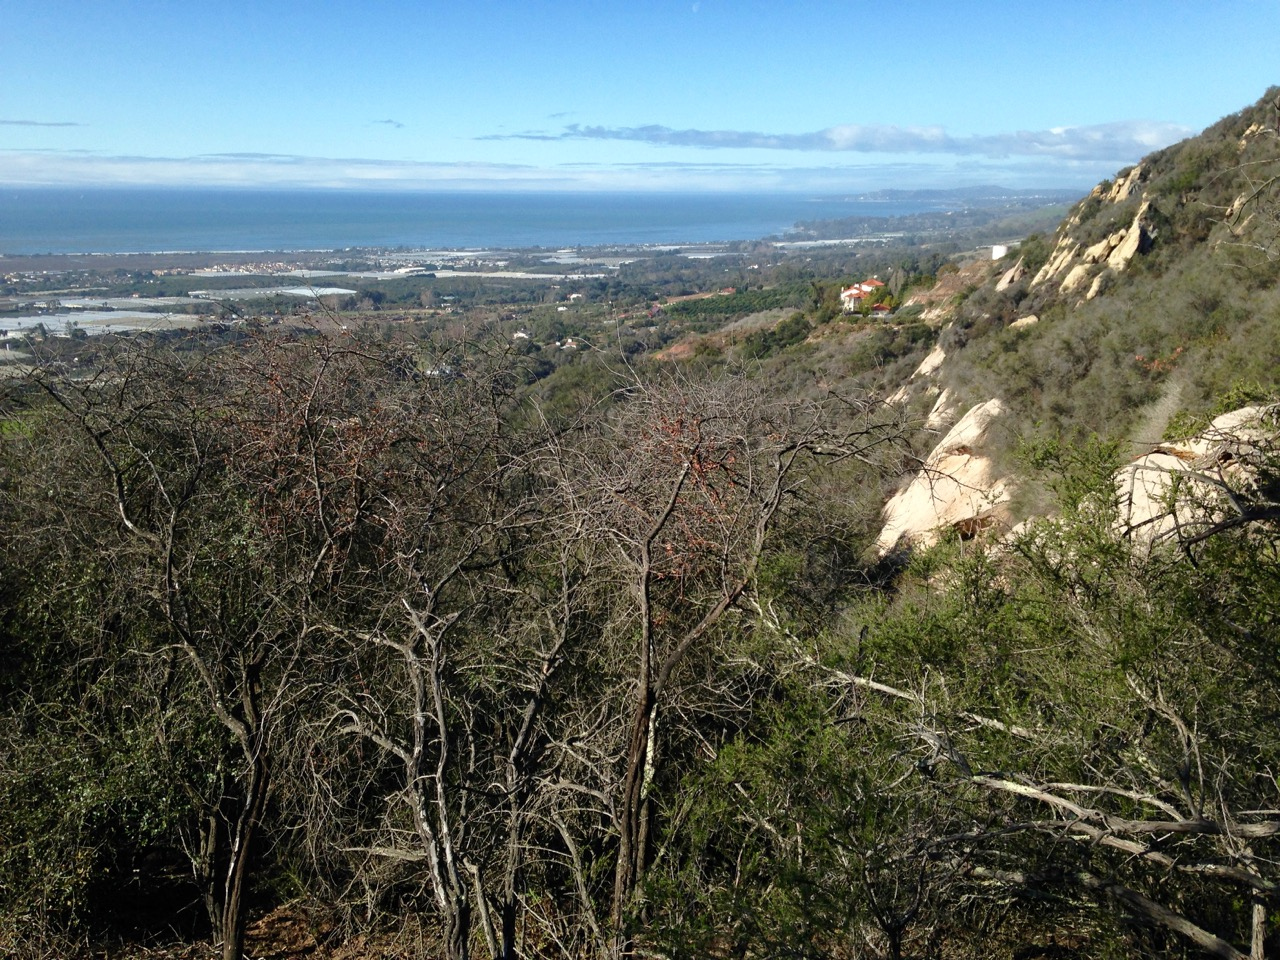 Franklin Trail – Carpinteria, California